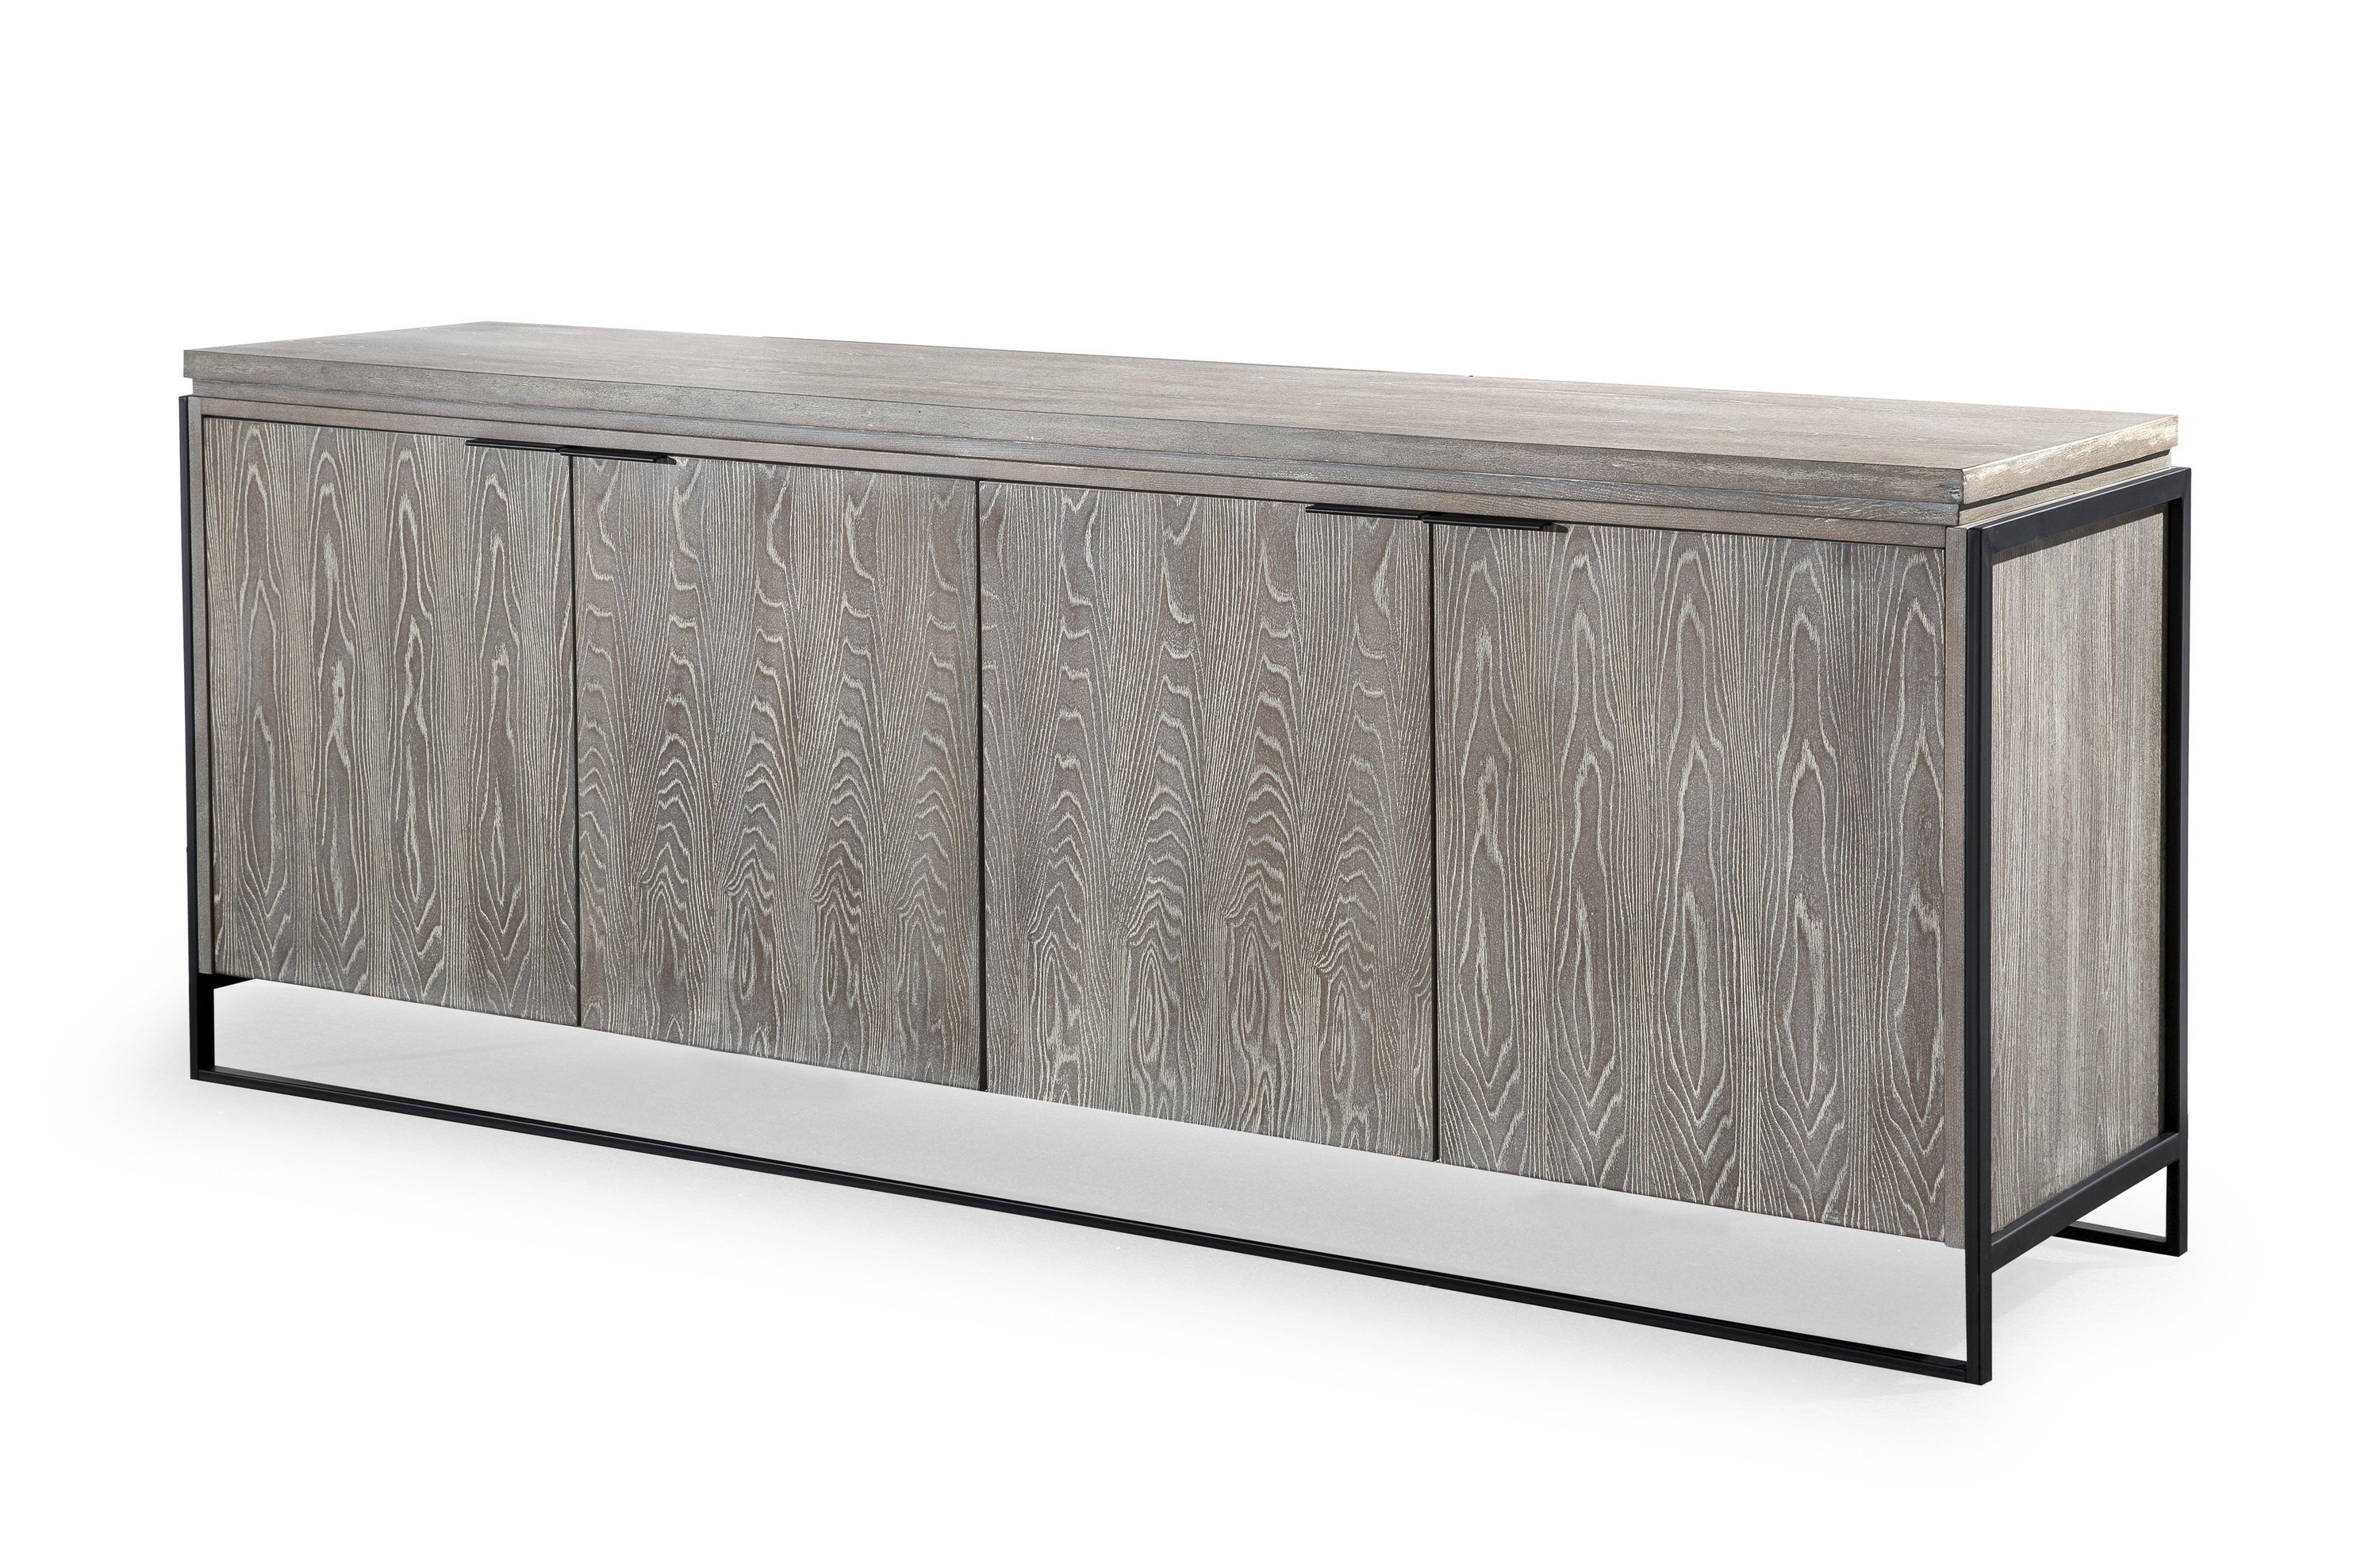 Zybert Sideboard & Reviews | Joss & Main Within Most Recently Released Rosson Sideboards (#20 of 20)